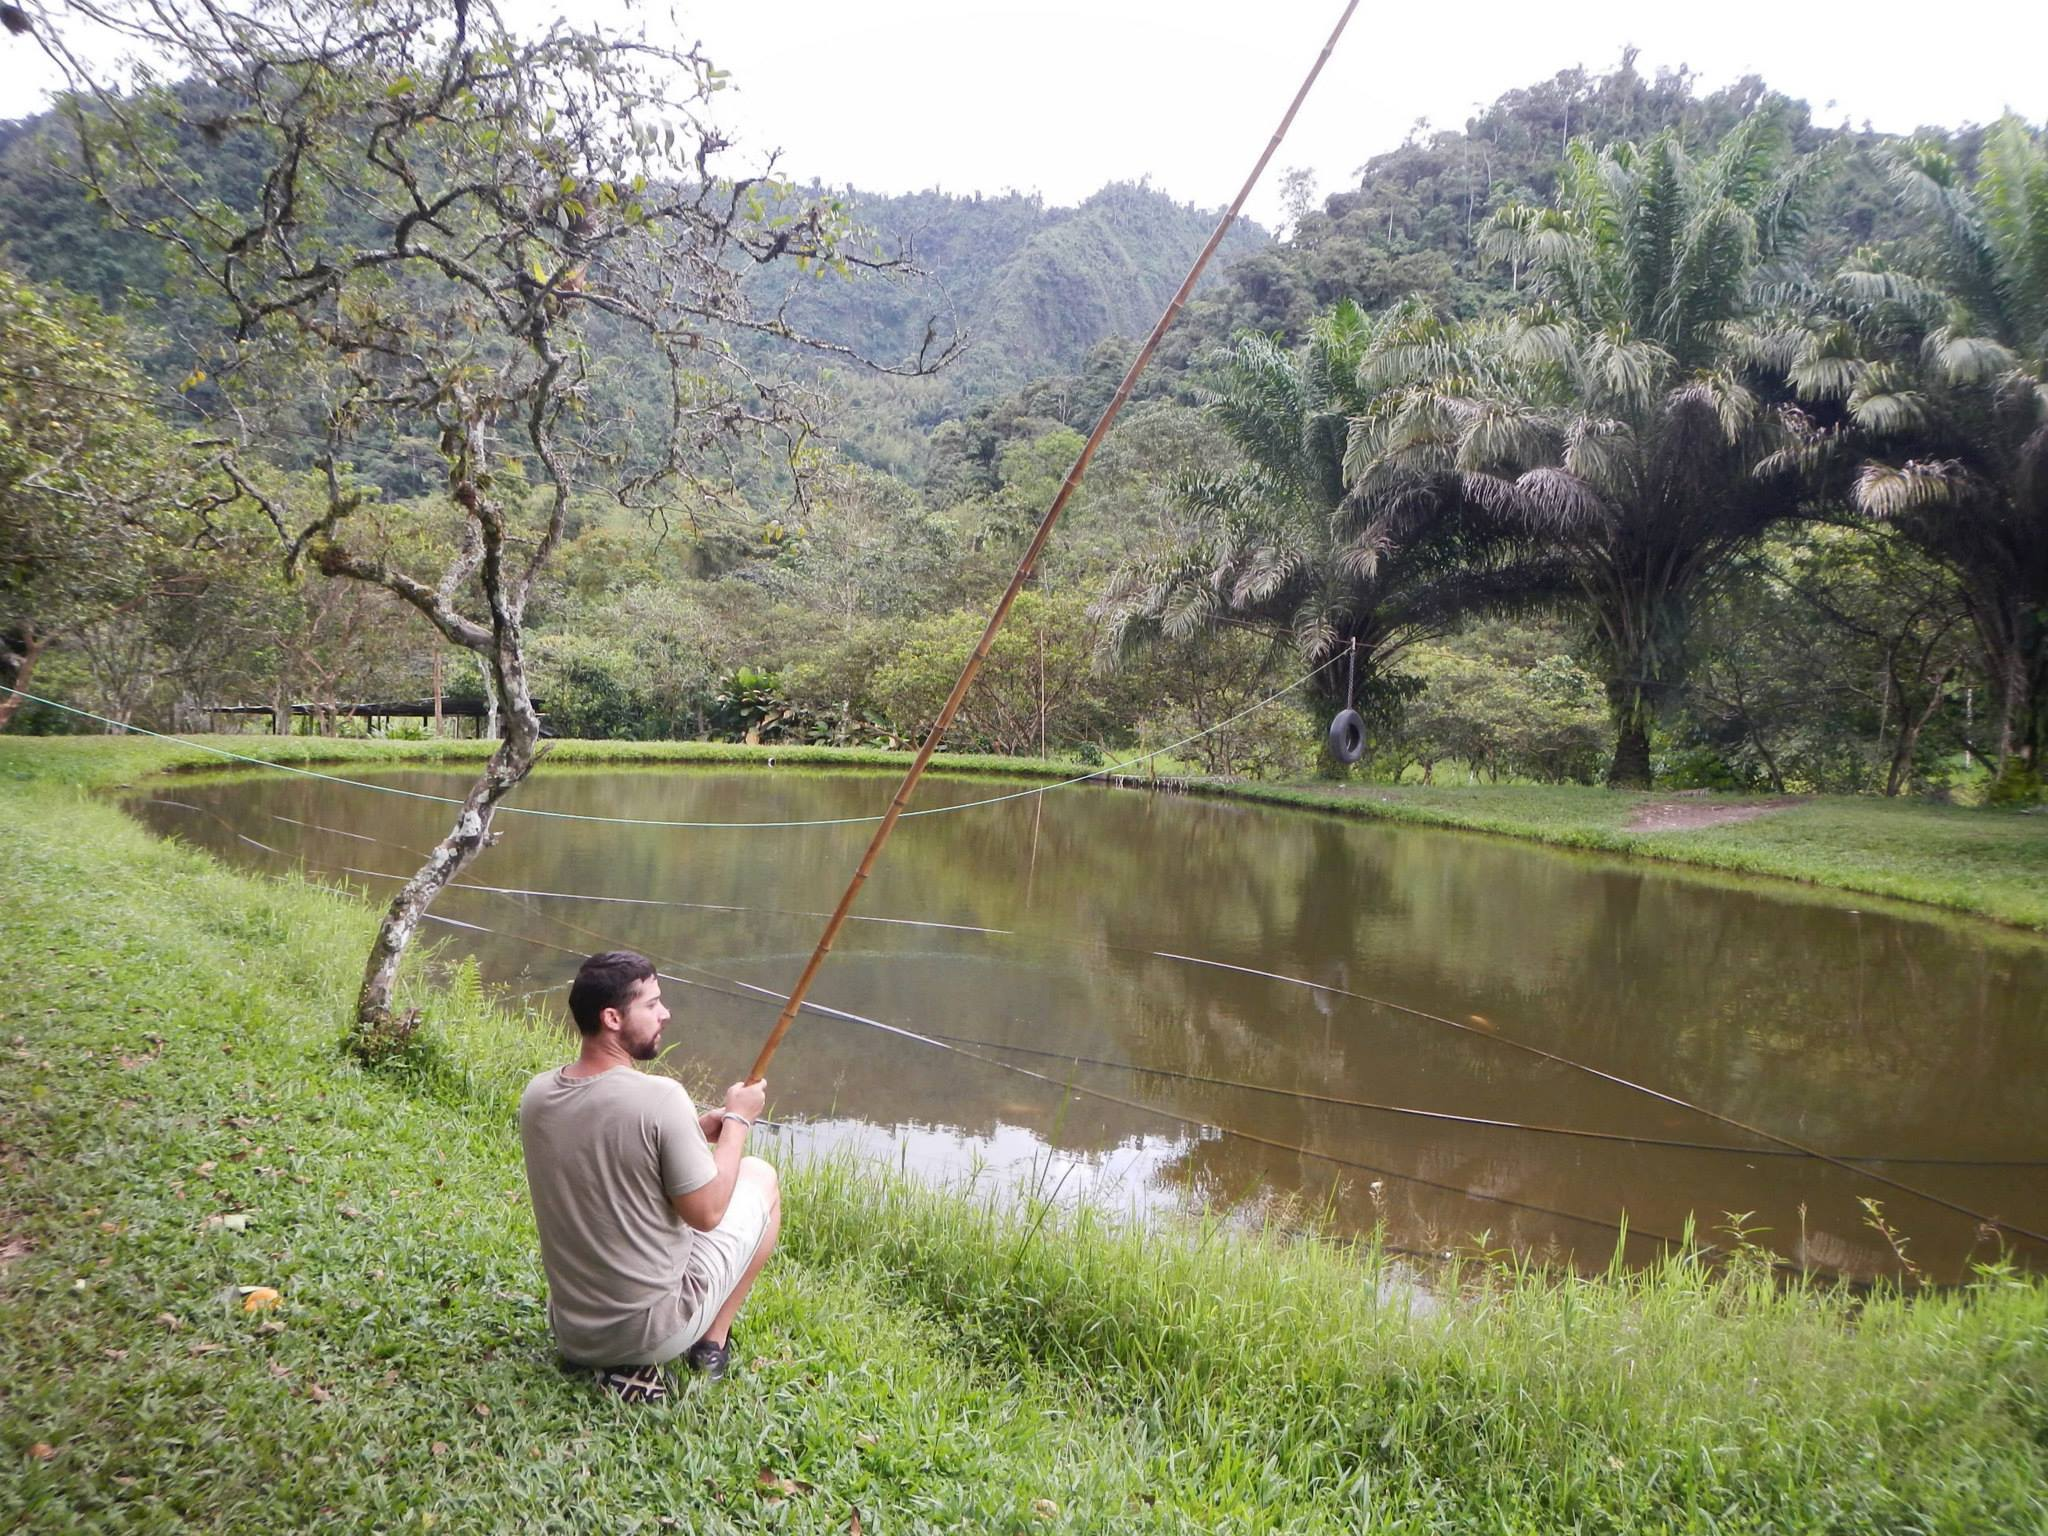 Josh fishing in Mindo Ecuador